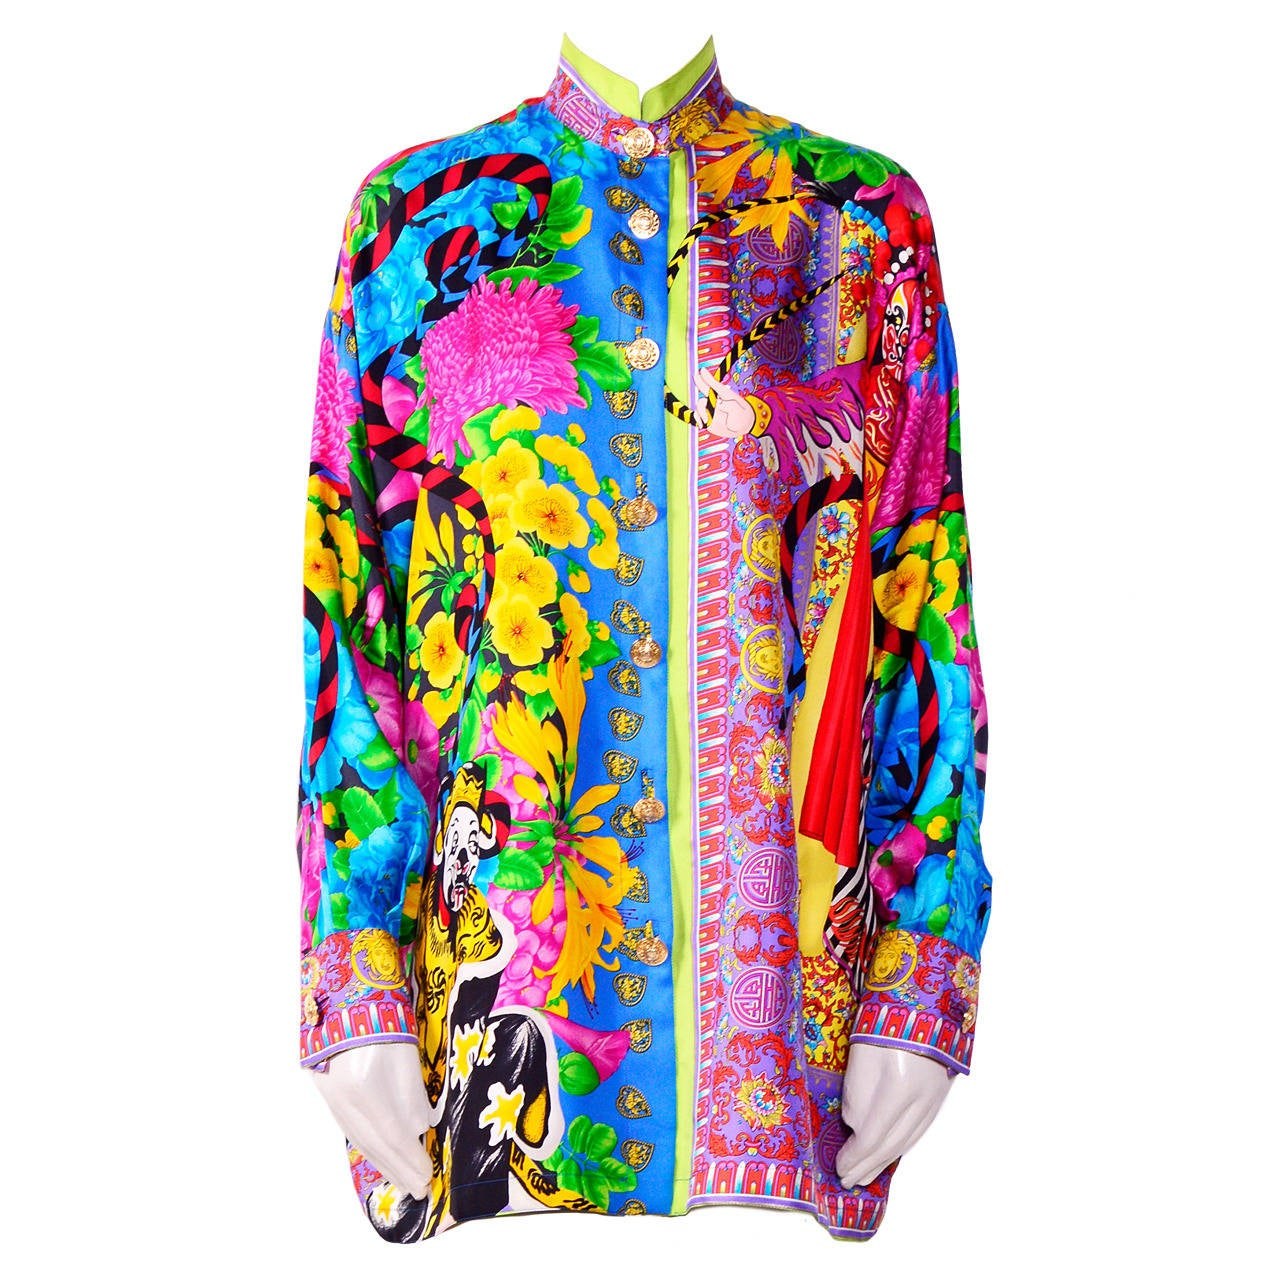 Vintage Gianni Versace Couture / Atelier Silk Print Oversized Blouse 1